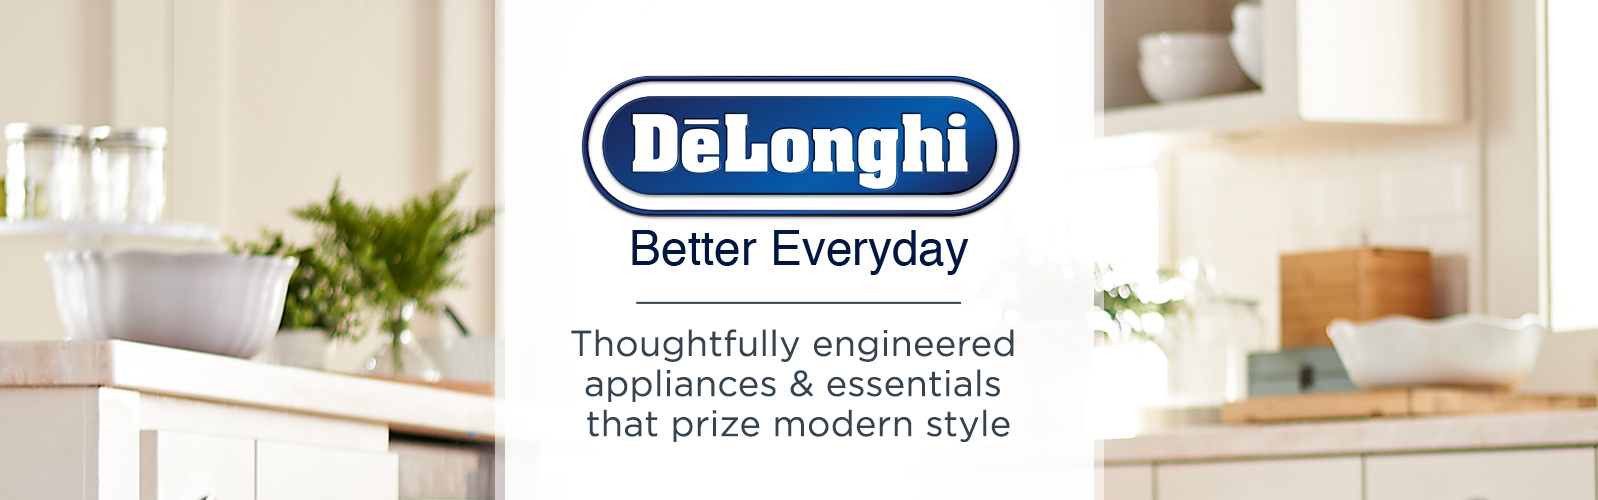 DeLonghi. Thoughtfully engineered appliances & essentials that prize modern style